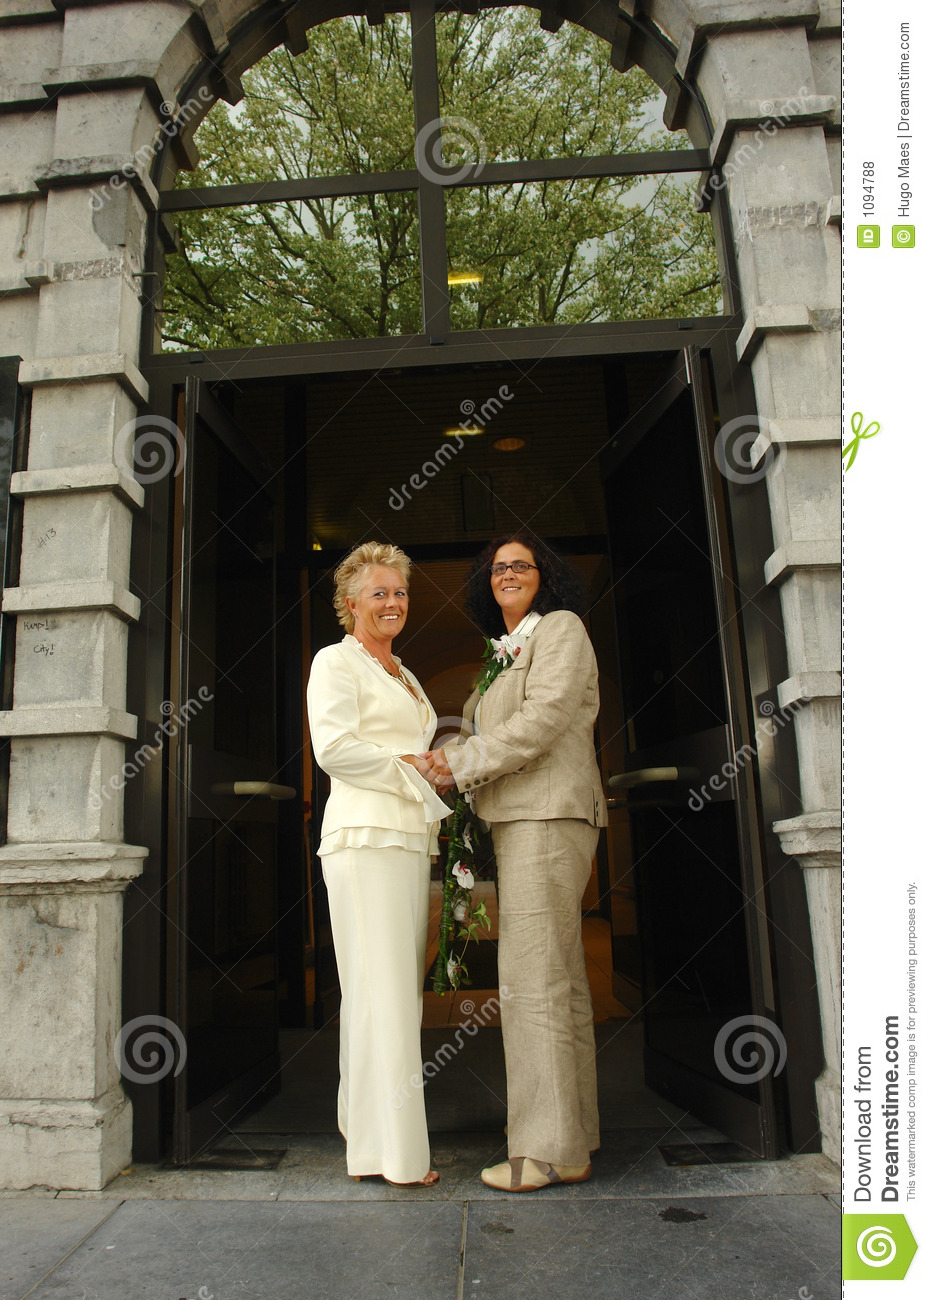 Lesbian Brides In Front Of Town Hall Stock Photo - Image 1094788-4027